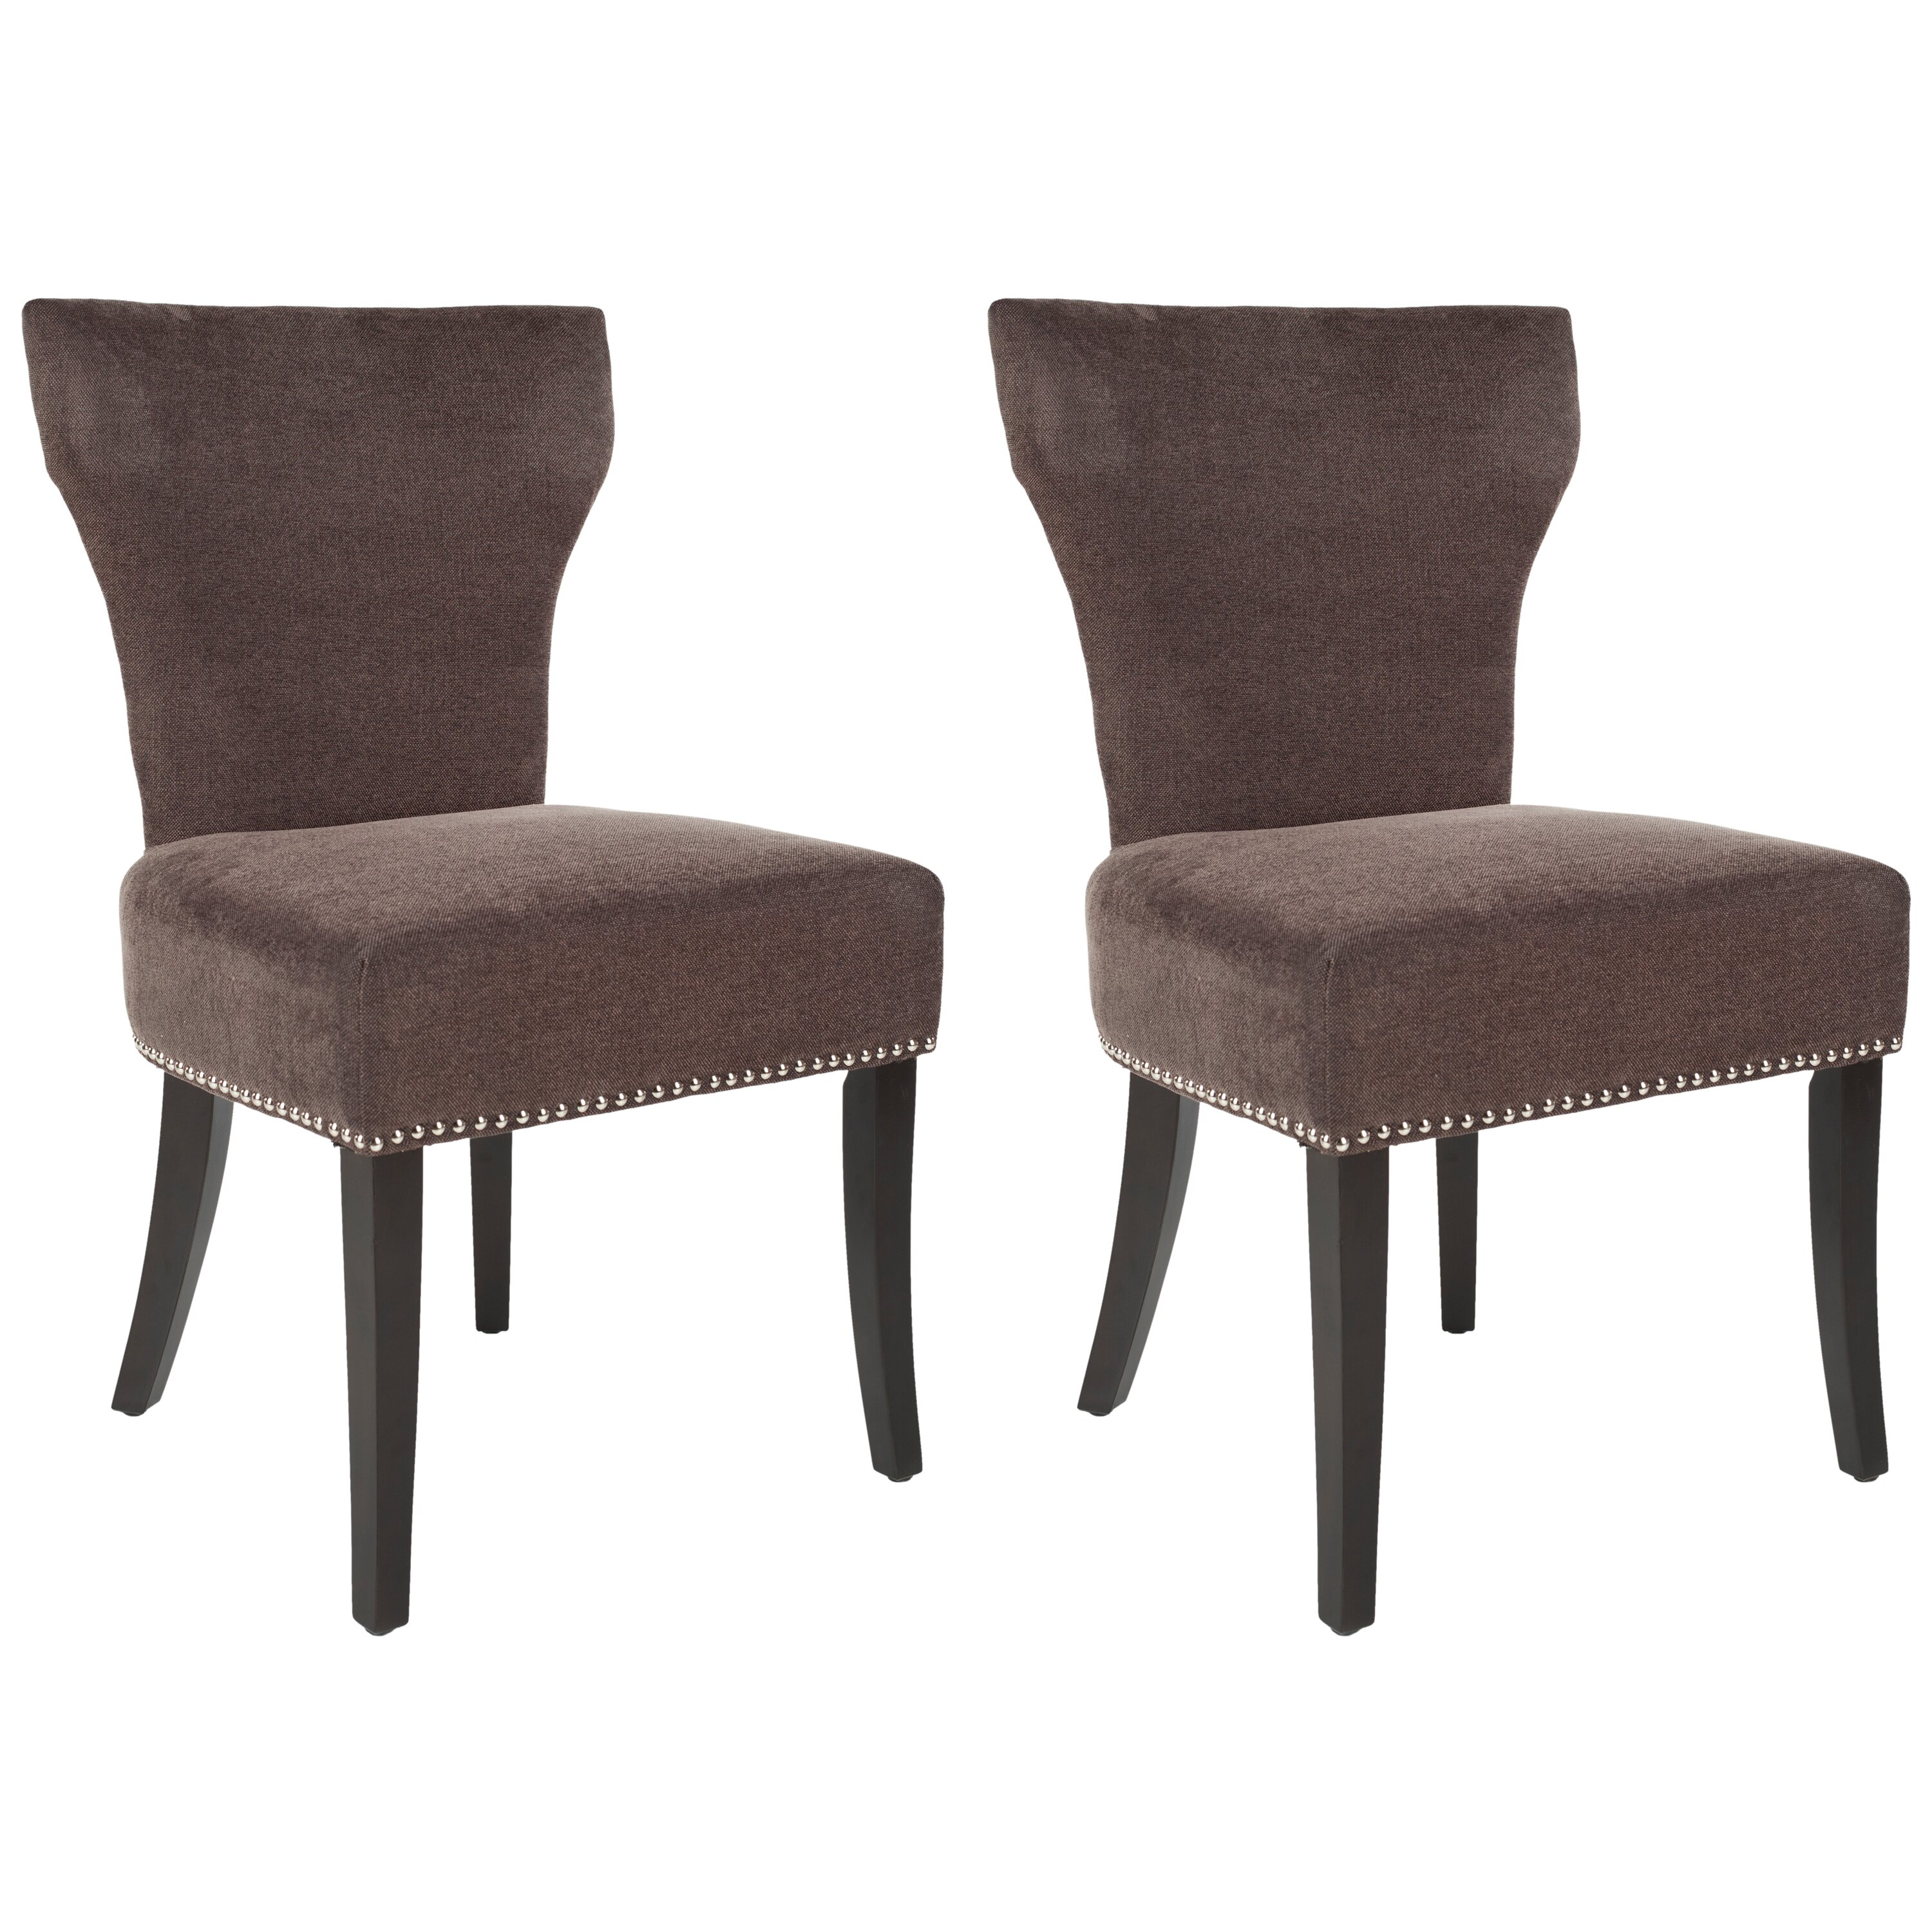 Safavieh maria side chair reviews wayfair - Safavieh dining room chairs ideas ...